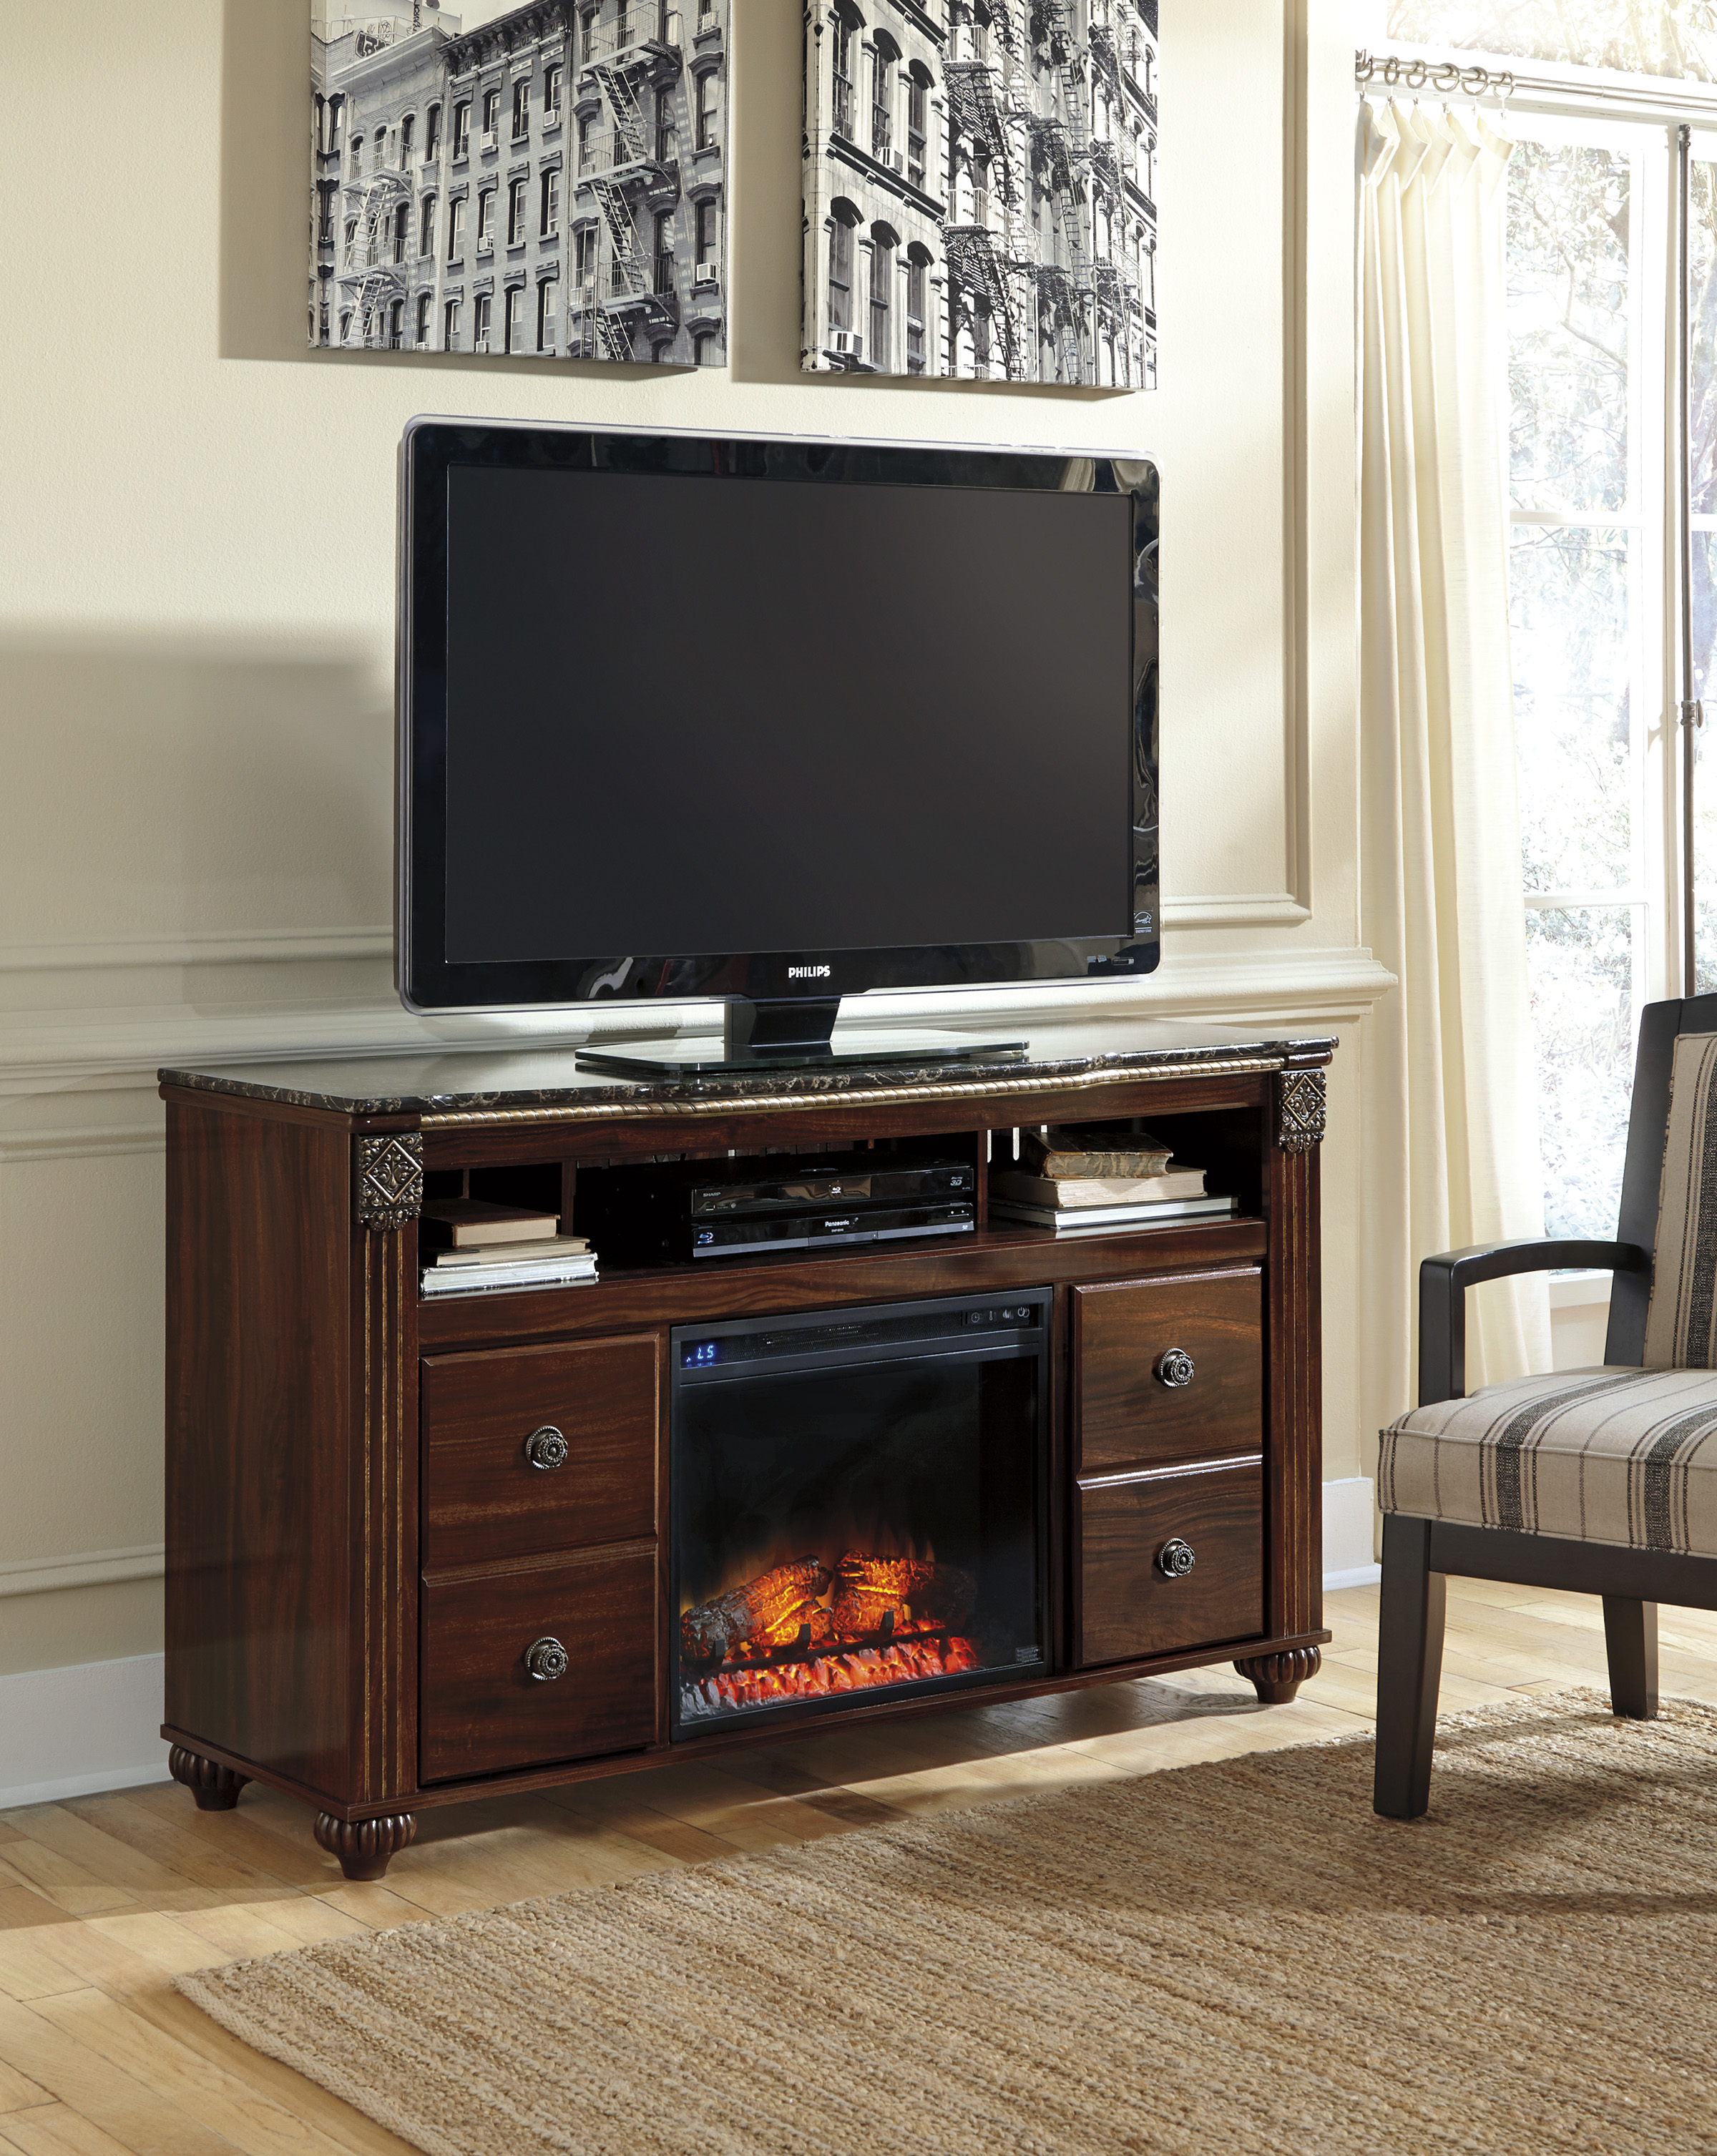 Gabriela Dark Reddish Brown Entertainment Stand With Log Fireplace  / $19.99 A Week